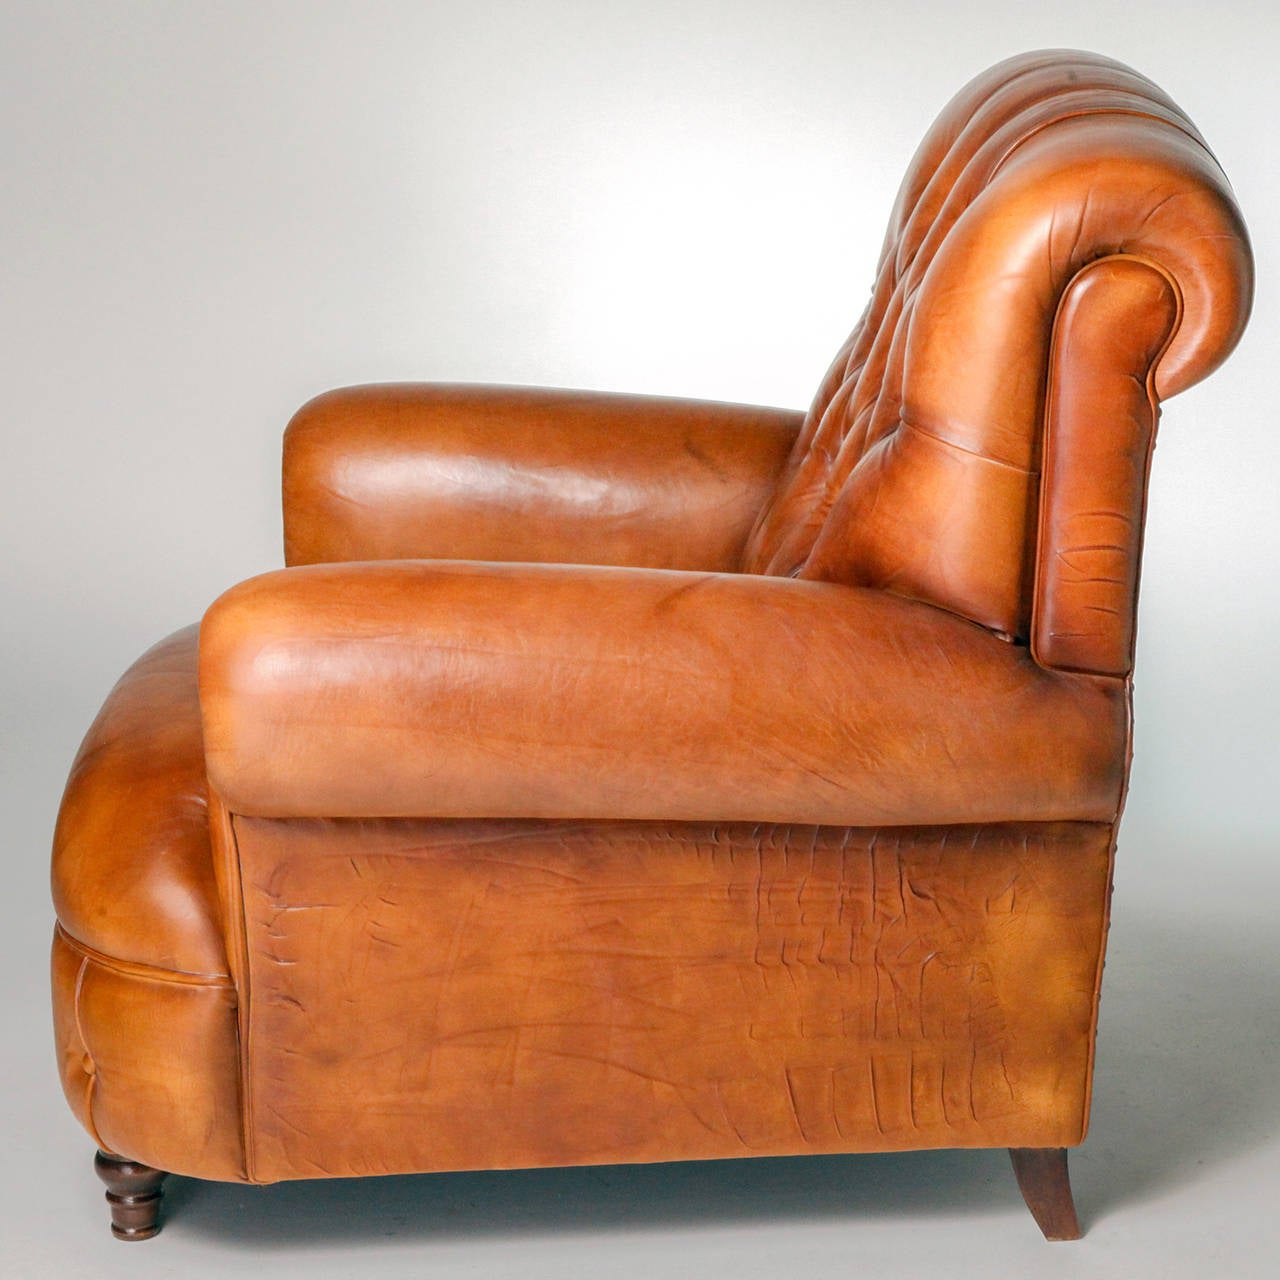 Tufted Leather Armchair at 1stdibs